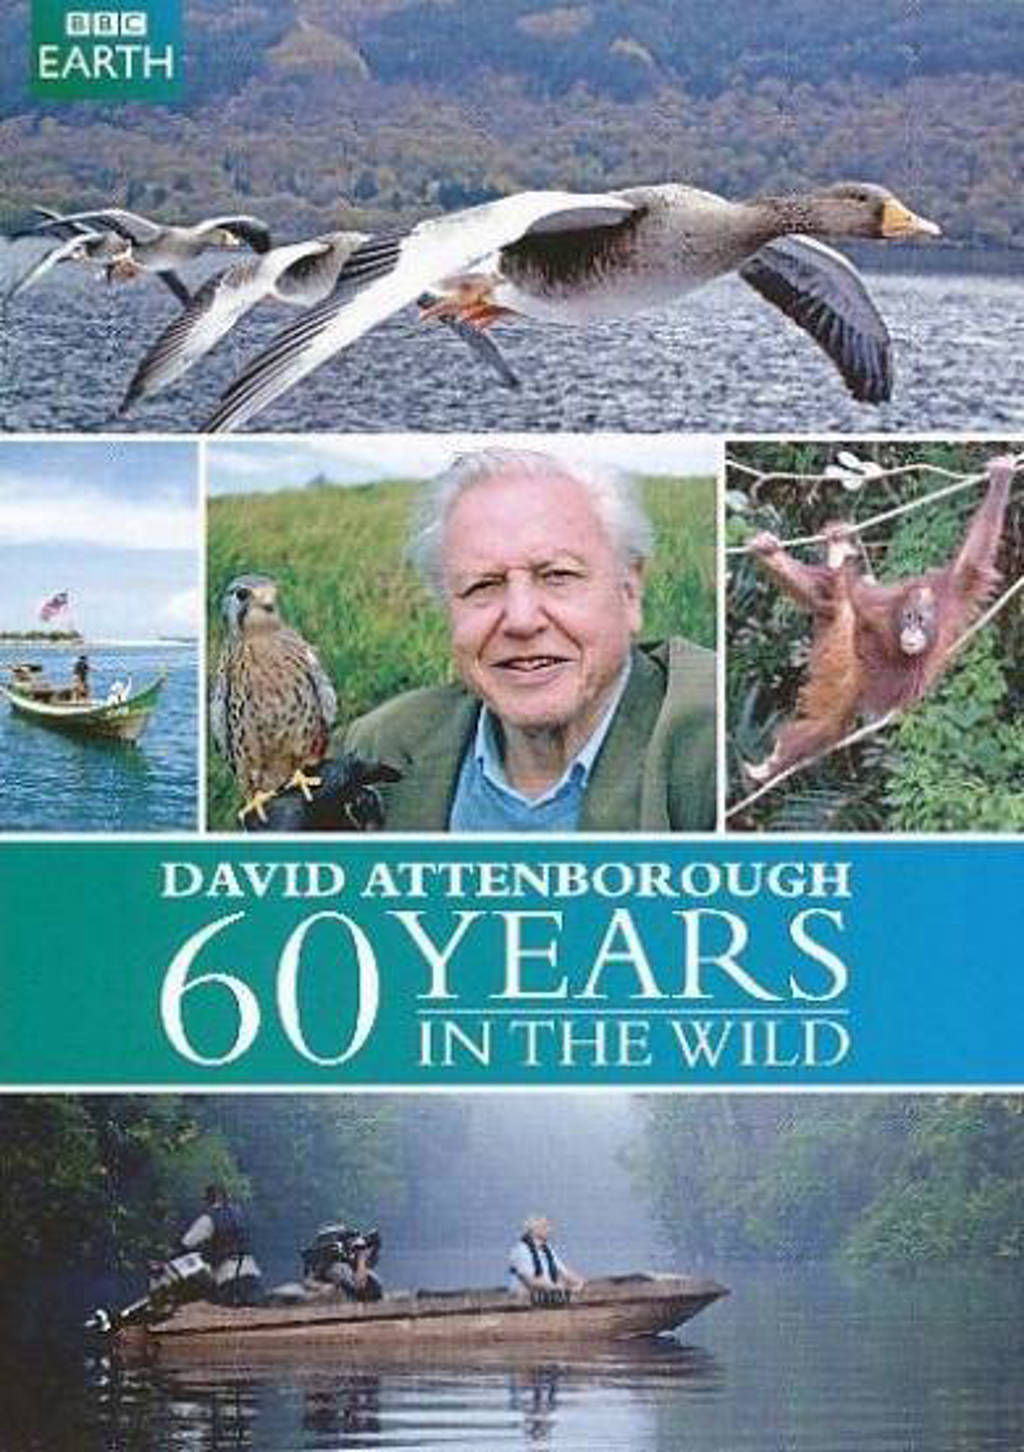 BBC earth - Attenborough 60 years in the wild (DVD)